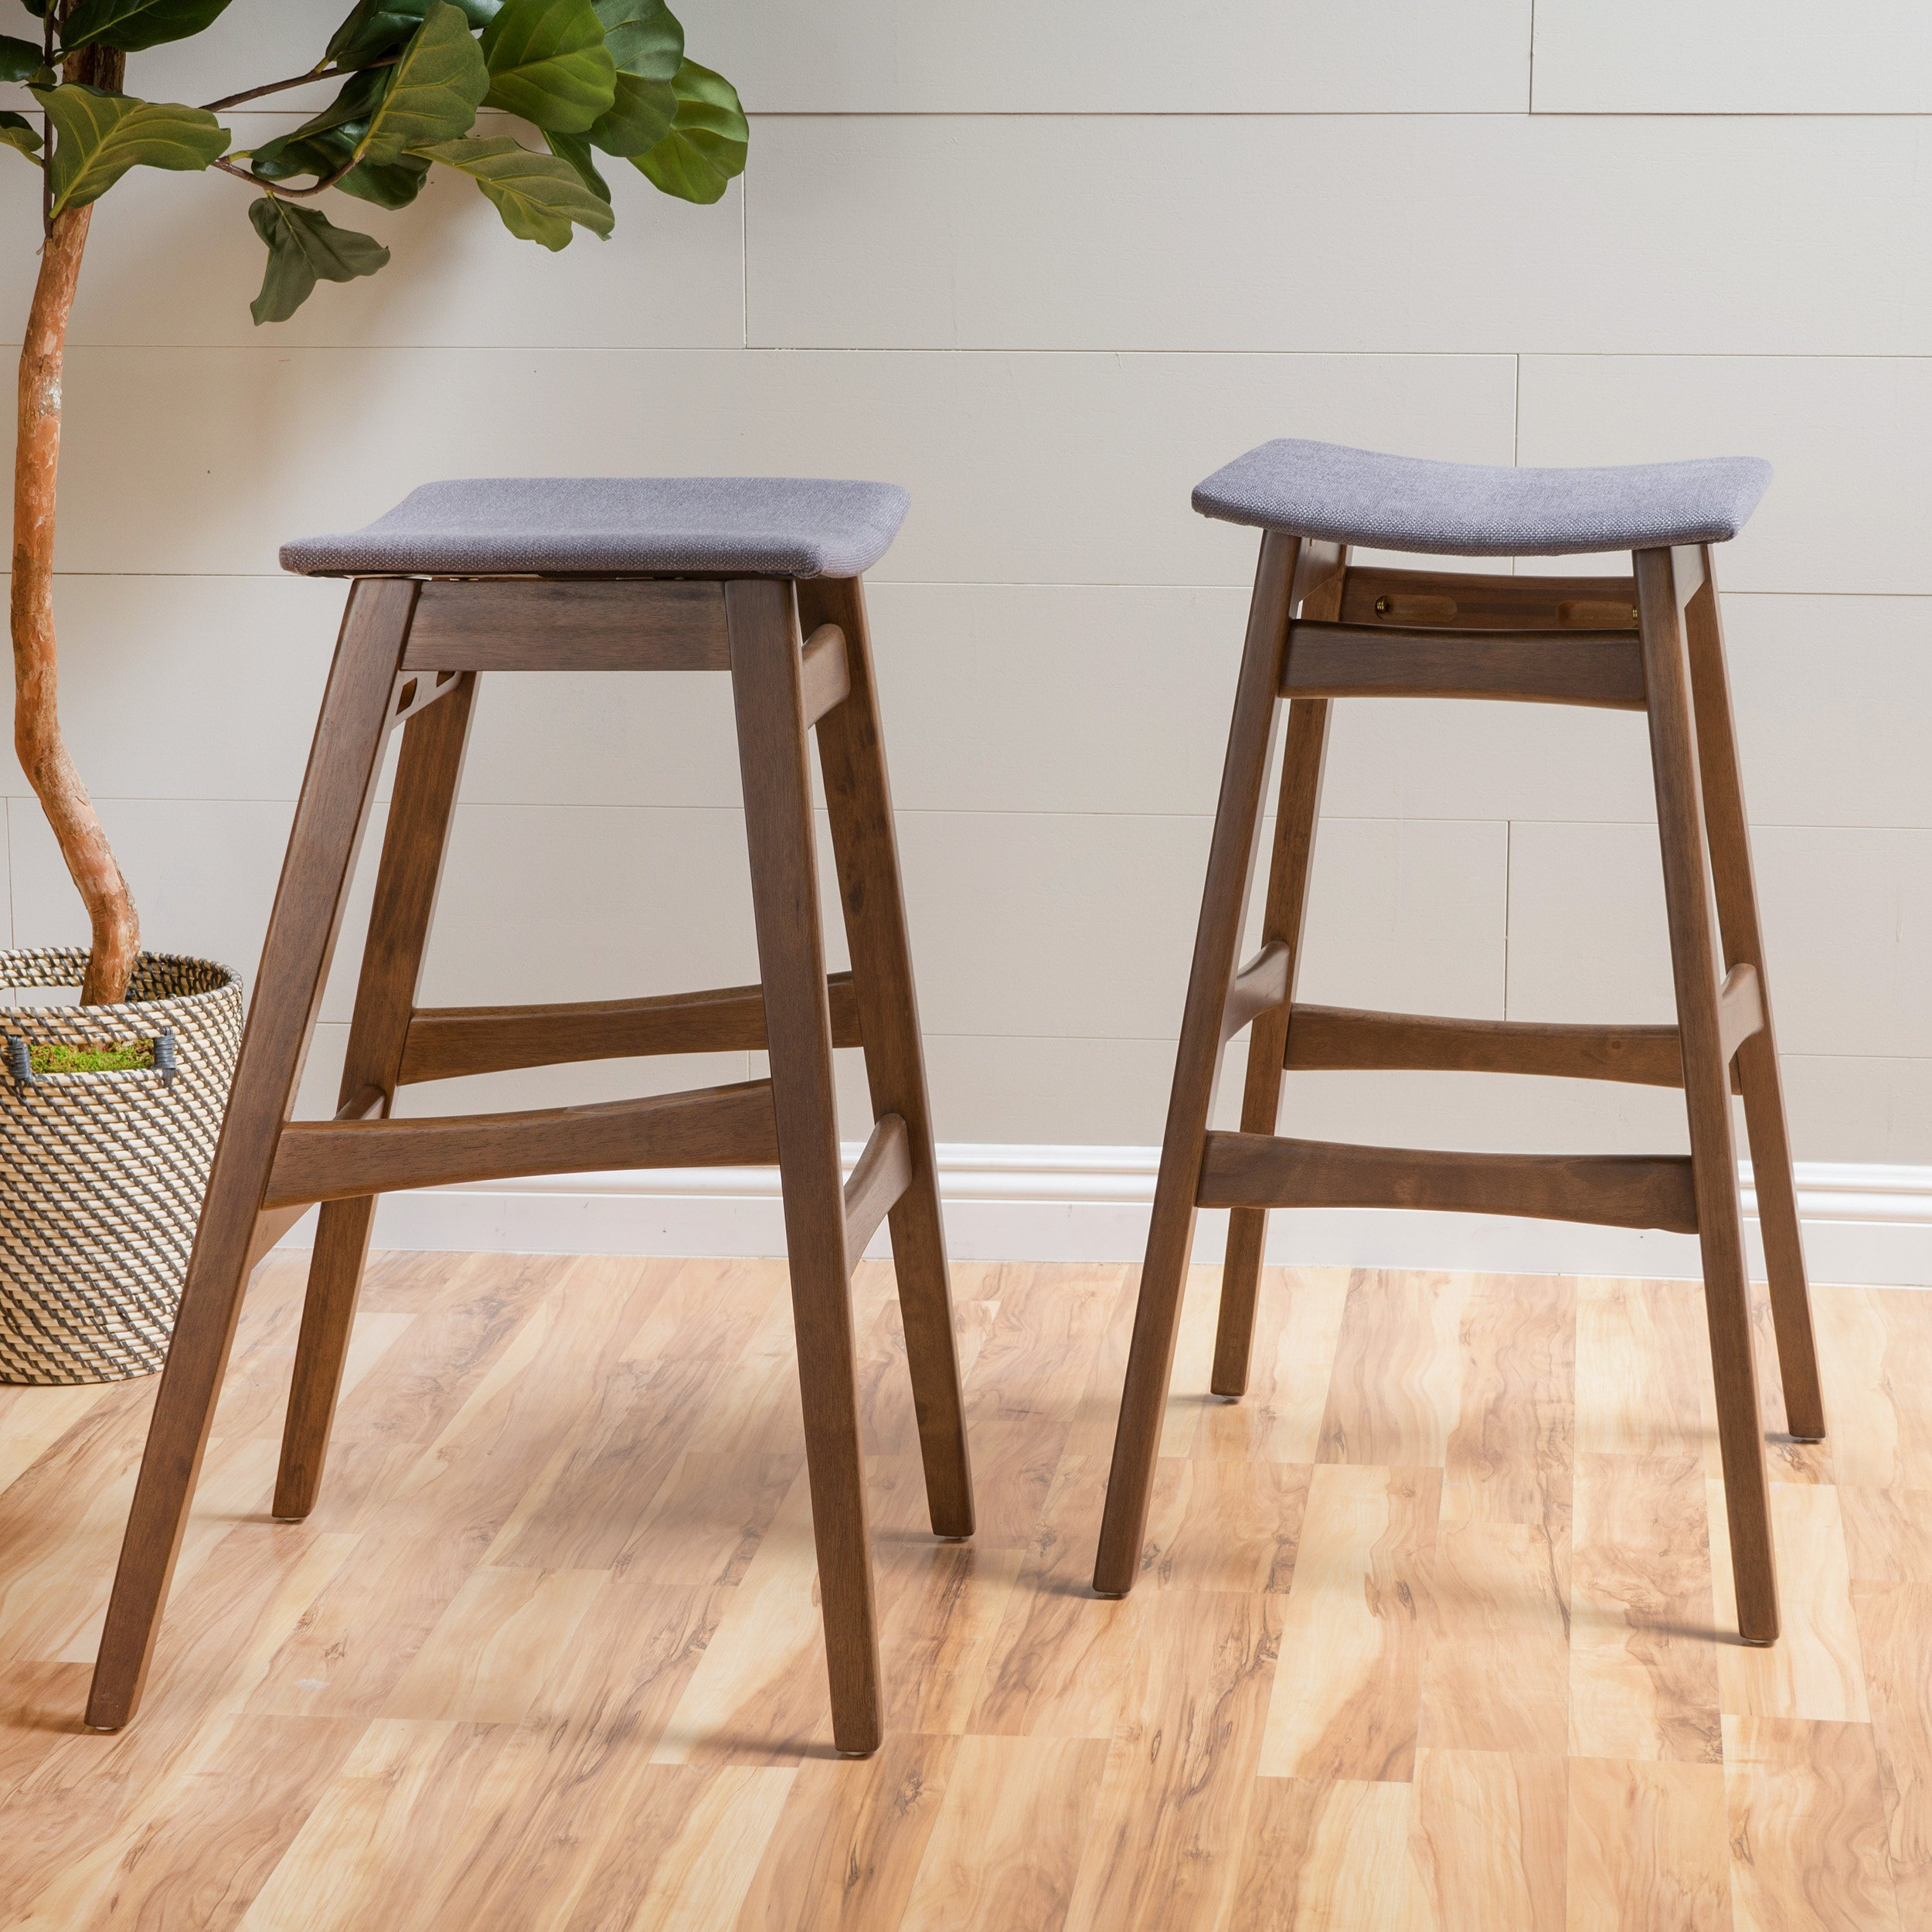 Christopher Knight Home Emmaline Fabric/Walnut Finish Bar Stool (Set Of 2), Dark Grey by Christopher Knight Home